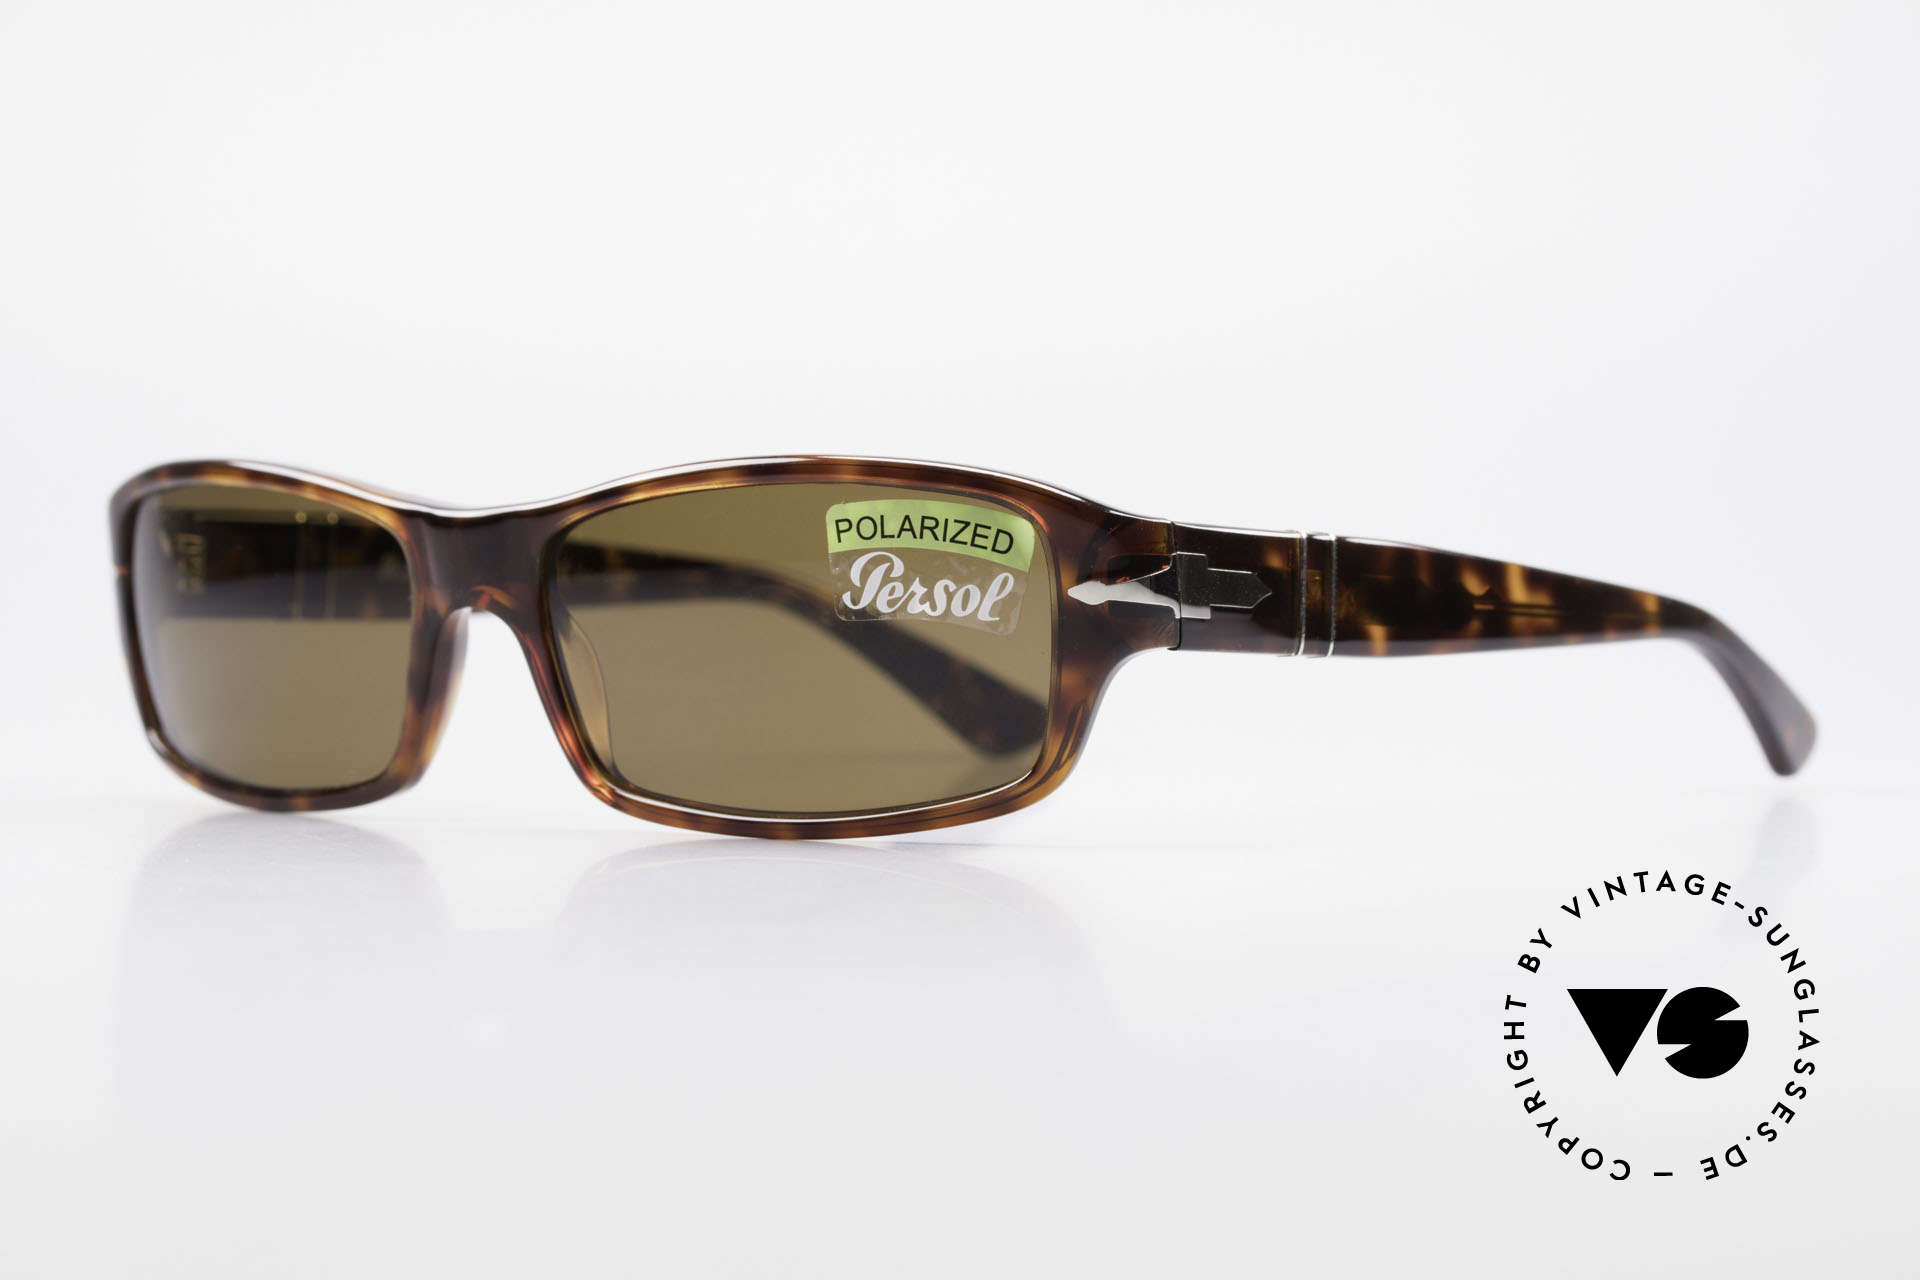 Persol 2786 Classic Sunglasses Polarized, polarized mineral lenses (100% UV protection), Made for Men and Women